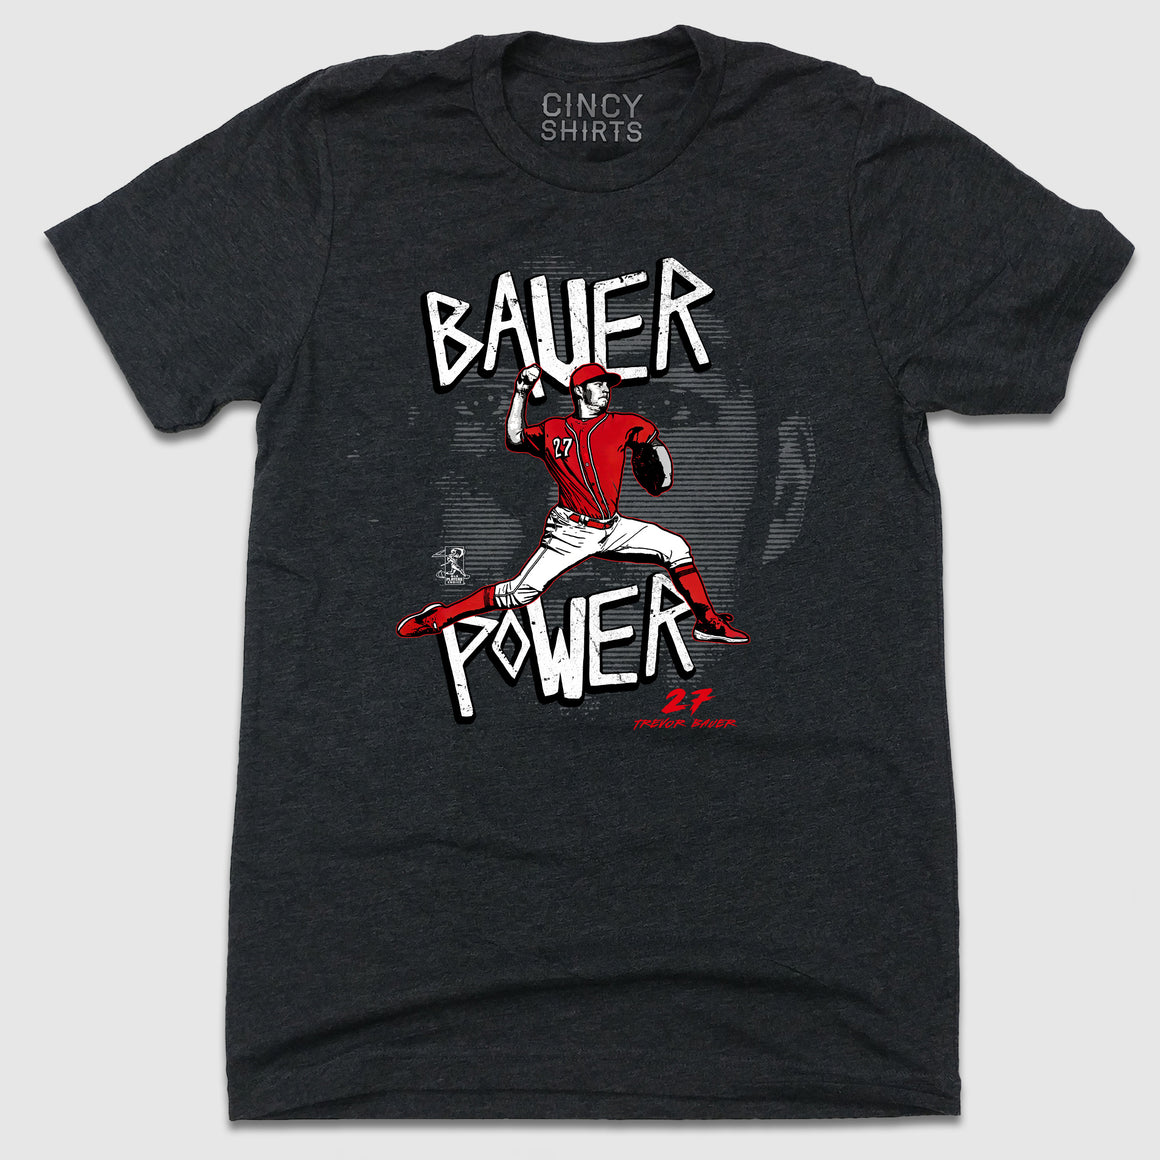 Official Bauer Power MLBPA Tee - Cincy Shirts